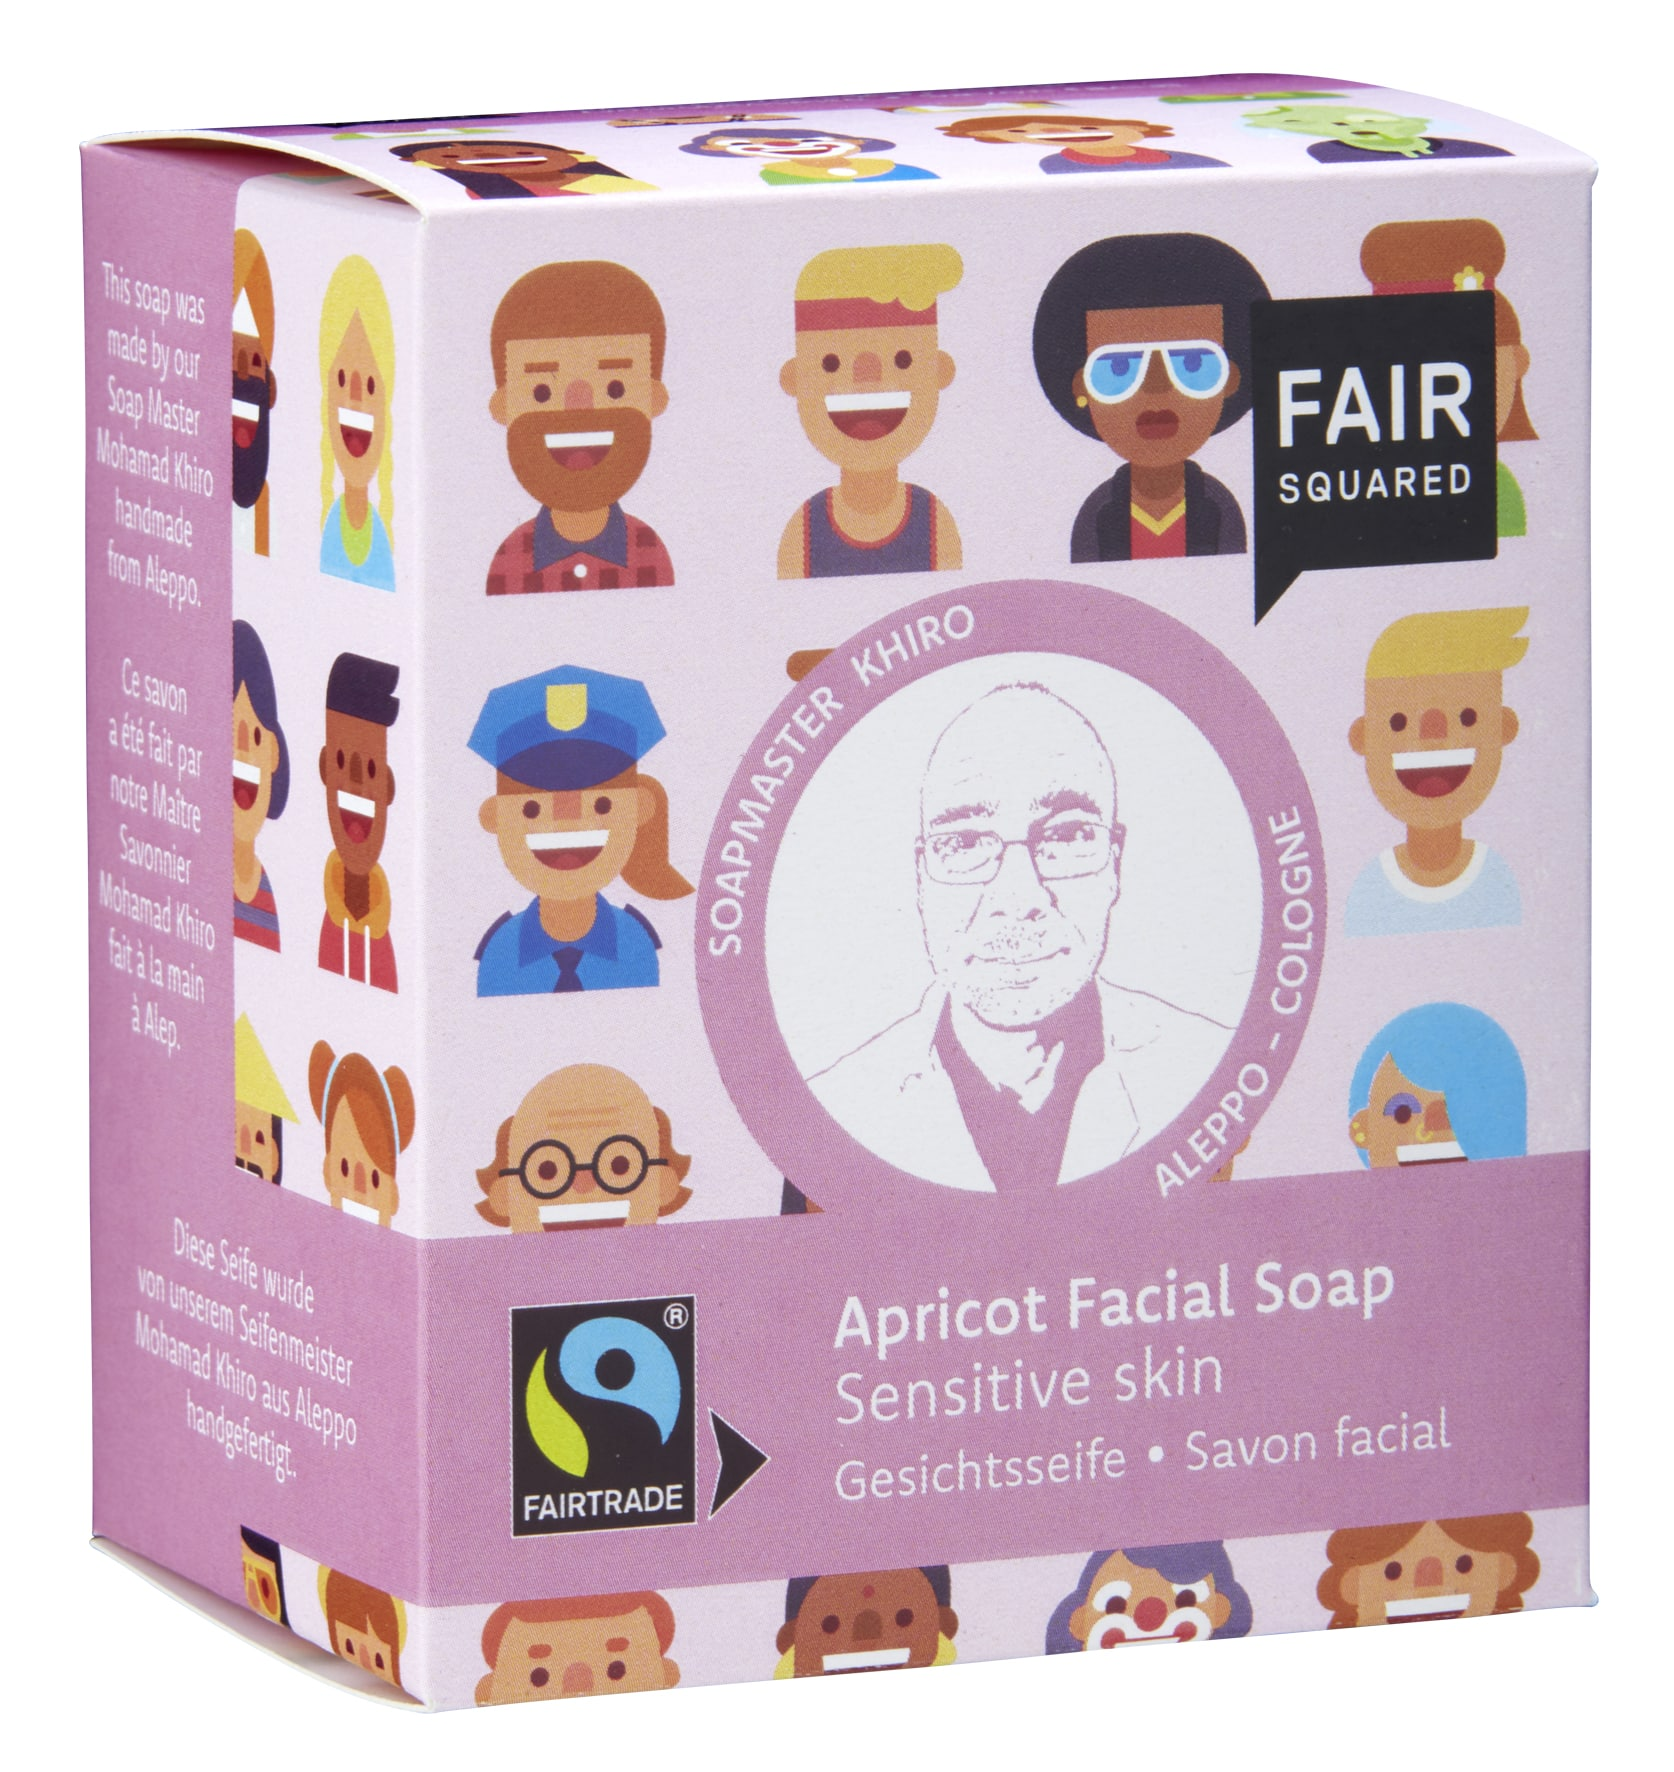 Apricot Facial Soap Sensitive